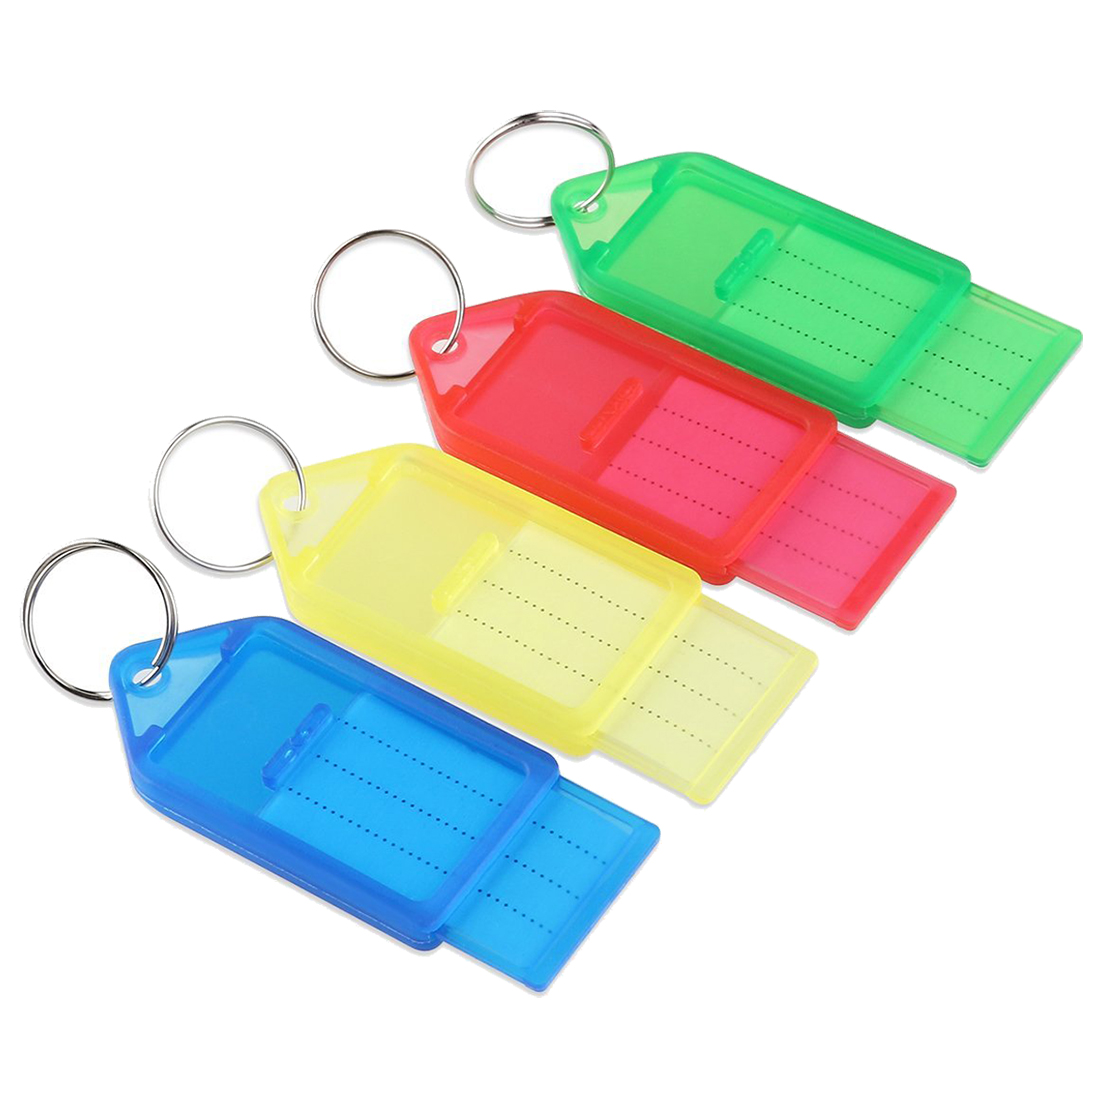 WCS 60pcs plastic Slideable Key Fobs Luggage Tags with Key Rings Random Color